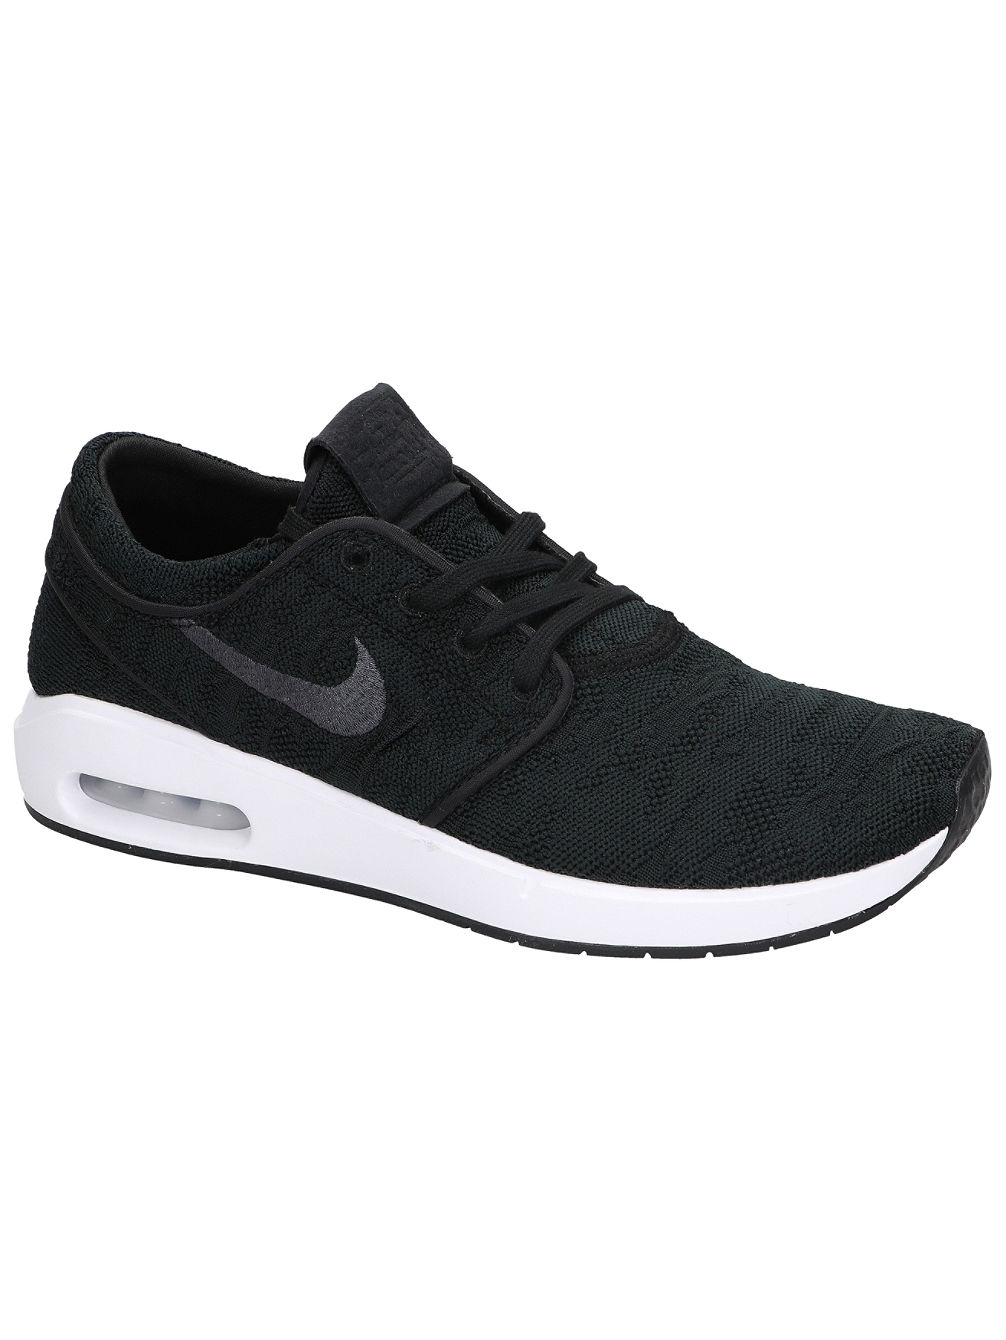 SB Air Max Stefan Janoski 2 Skate Shoes